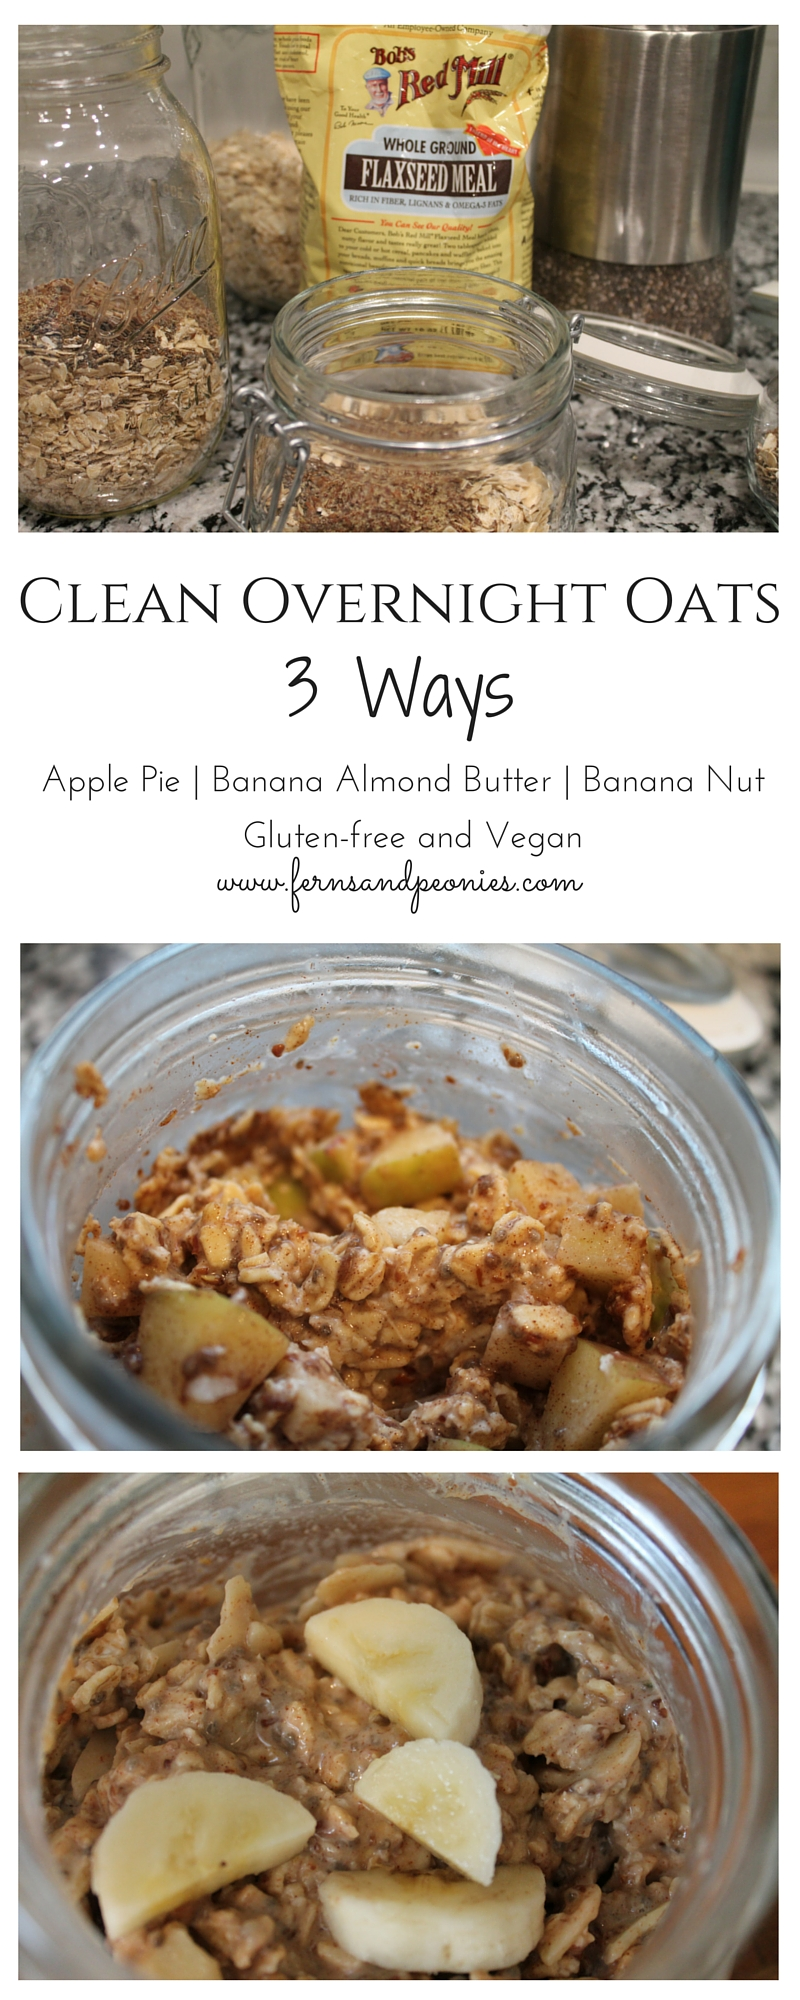 Clean Overnight Oats - 3 Ways (GF,V). From www.fernsandpeonies.com